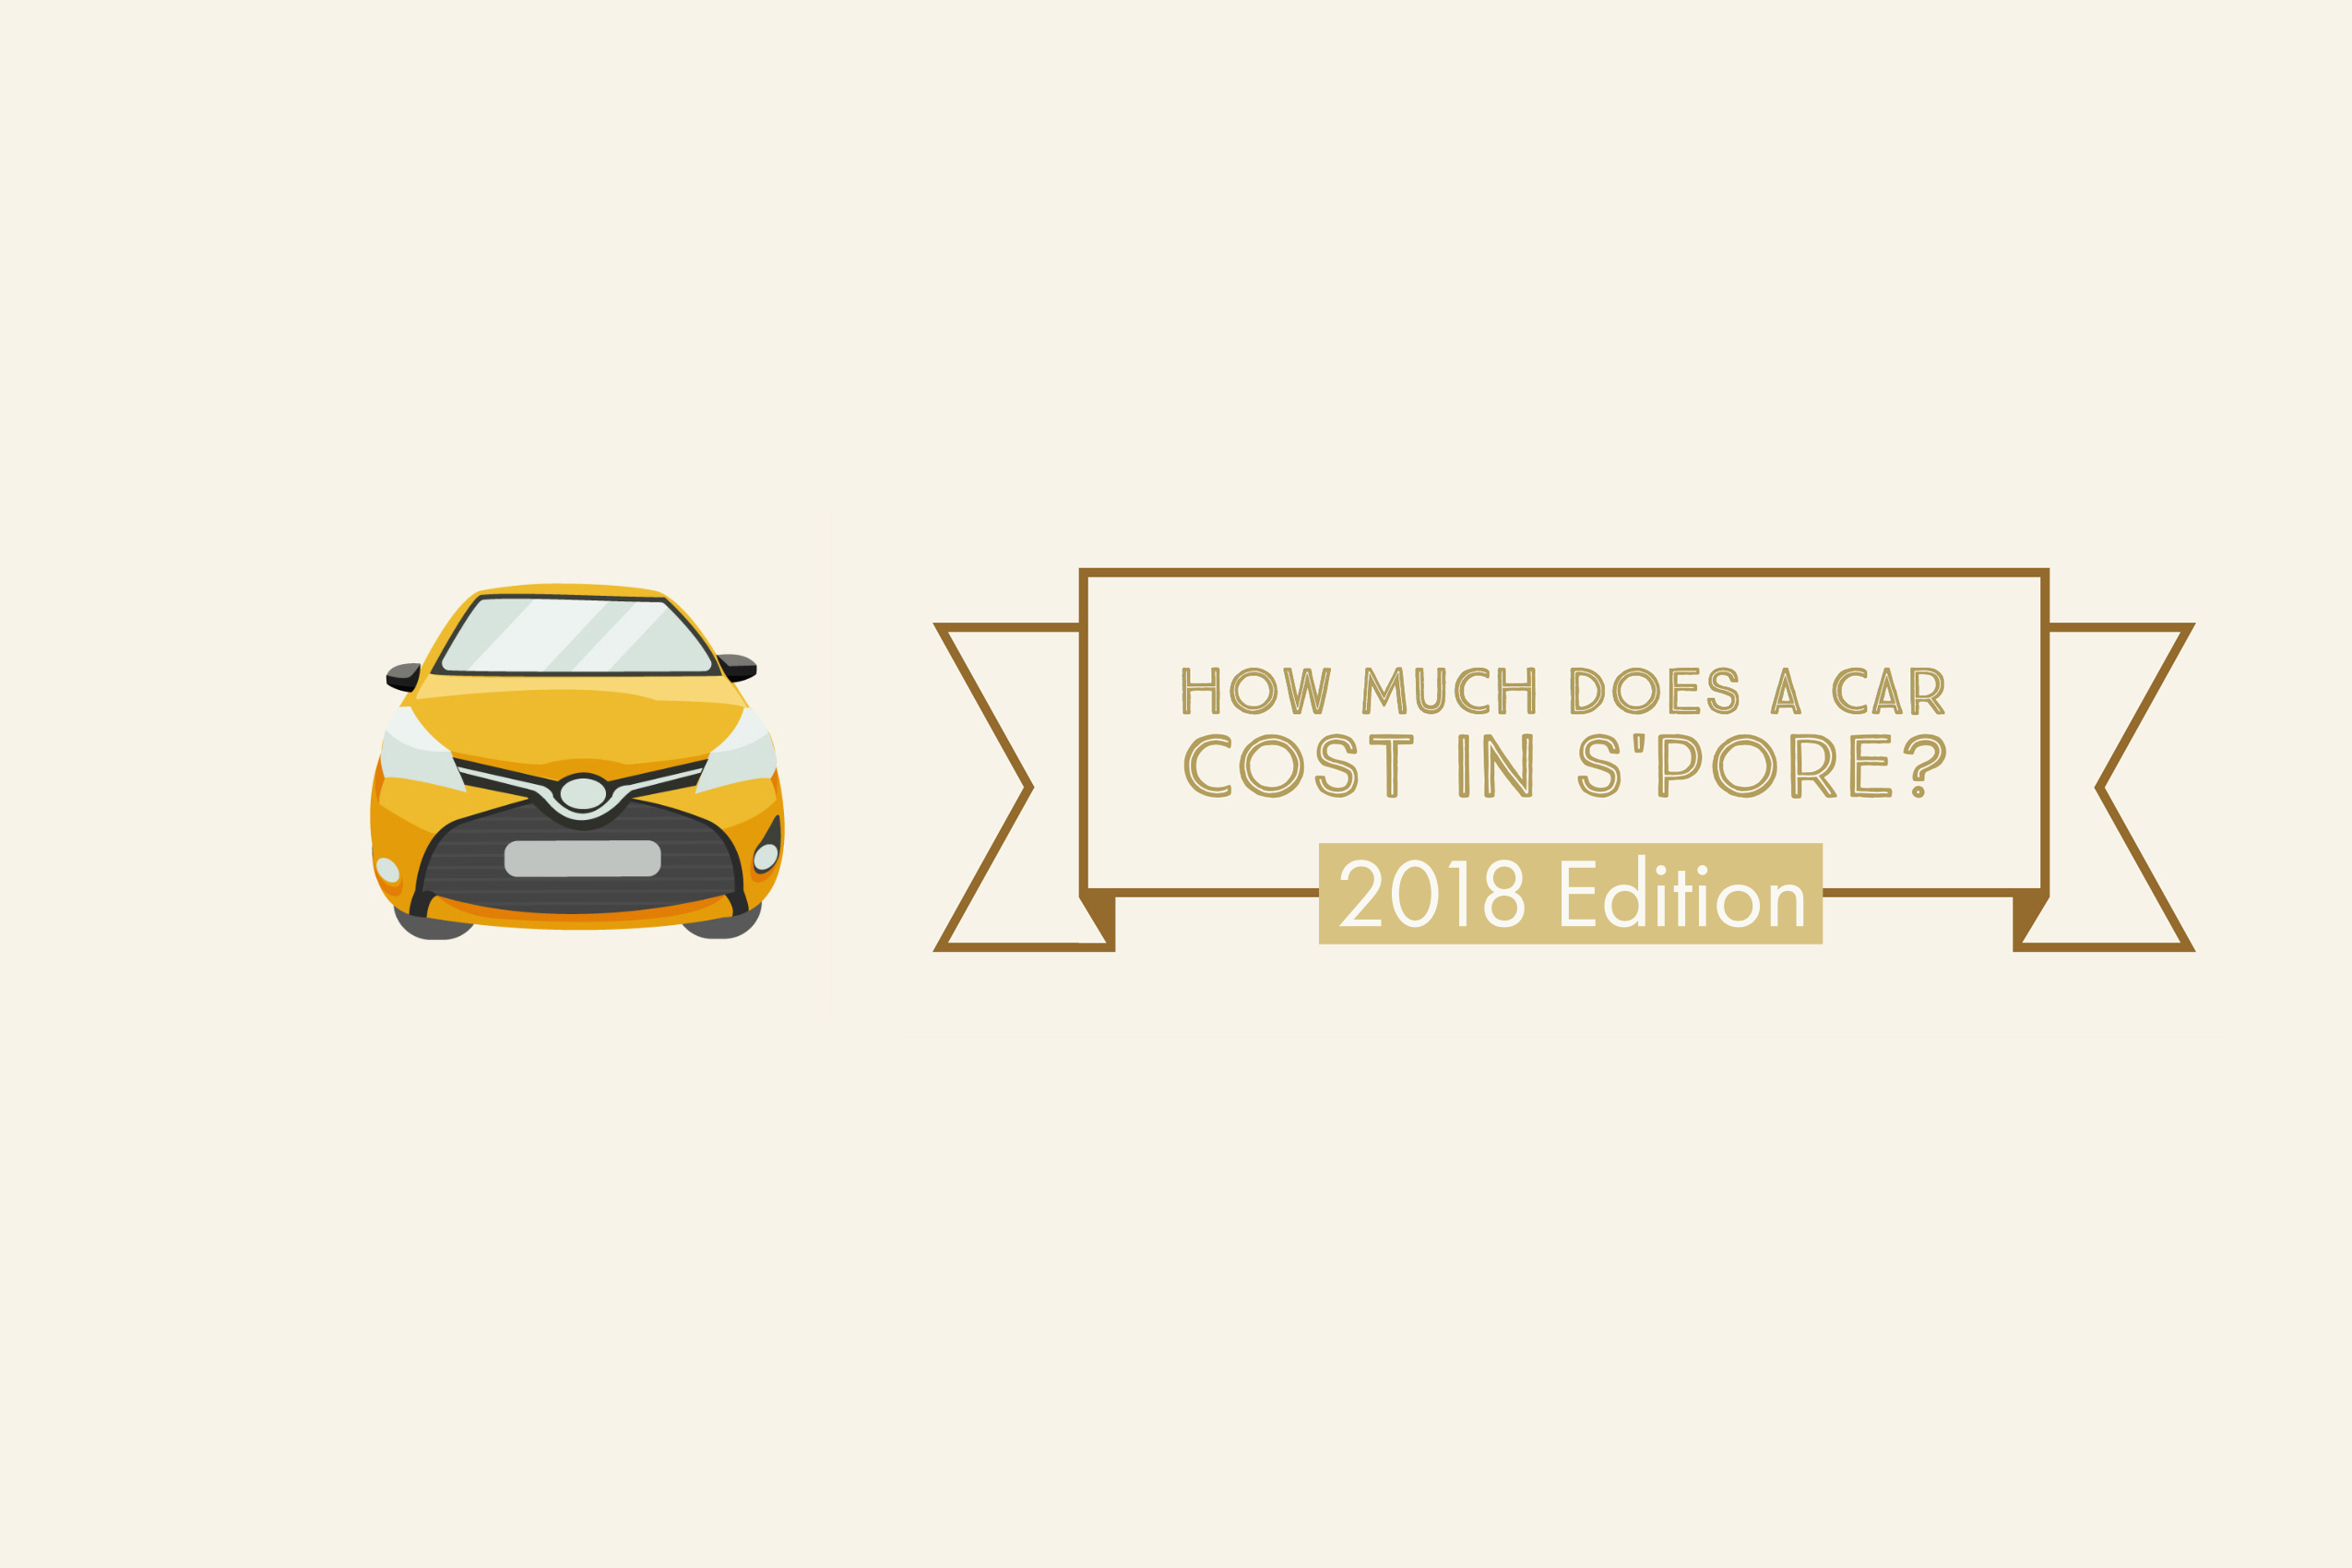 2018 Edition) Cost Of Owning A Car In Singapore Over 10 Years